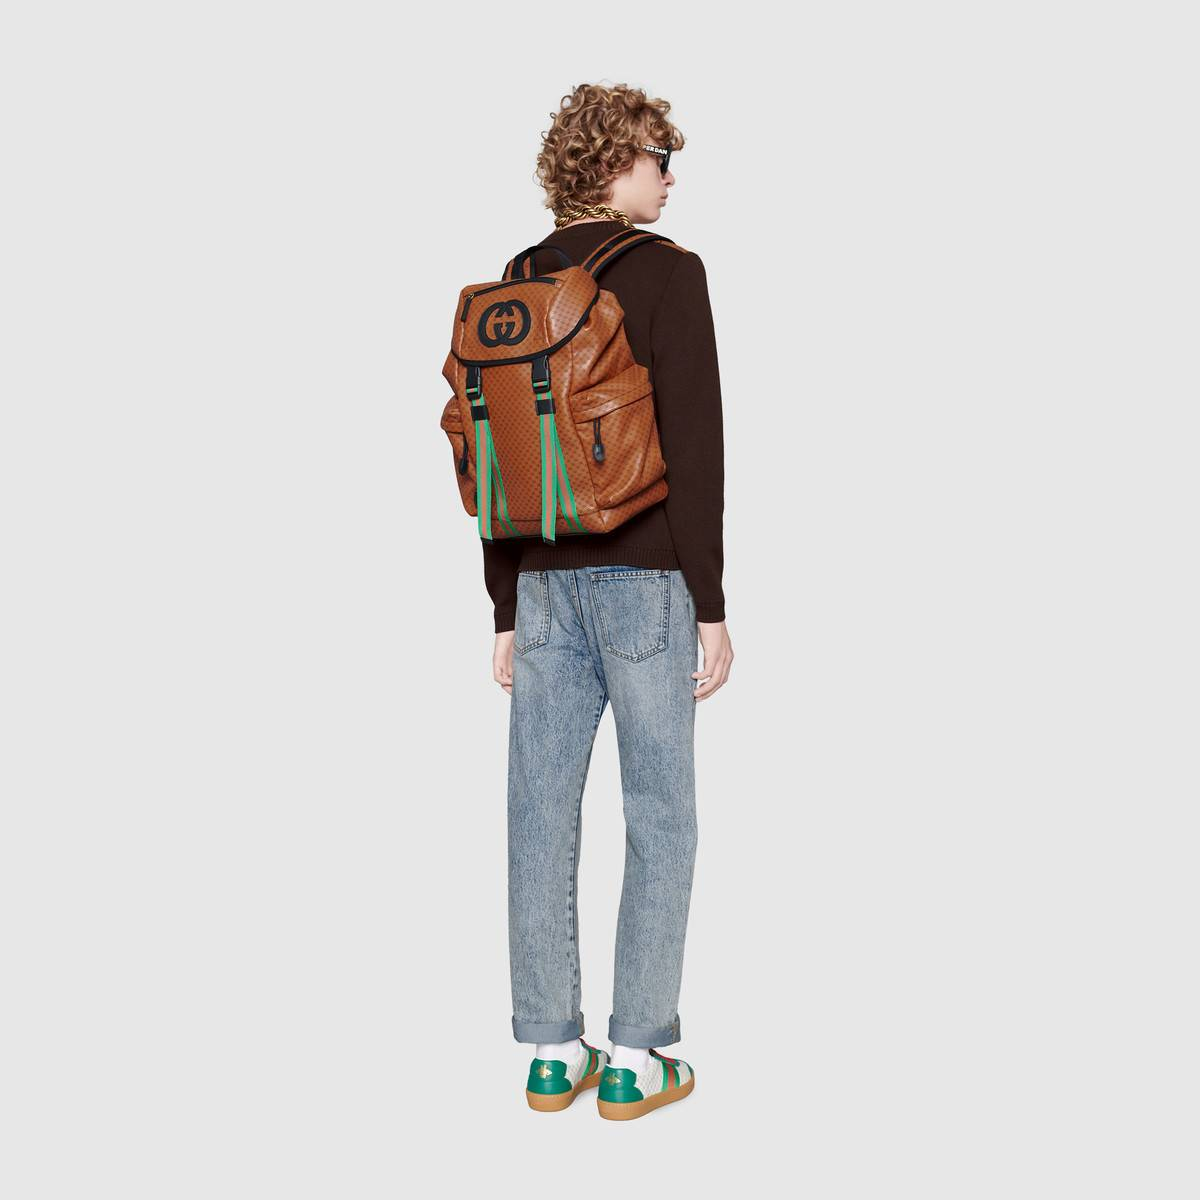 shop-gucci-dapper-dan-backpack-light-brown-leather-ebony-gg-pattern